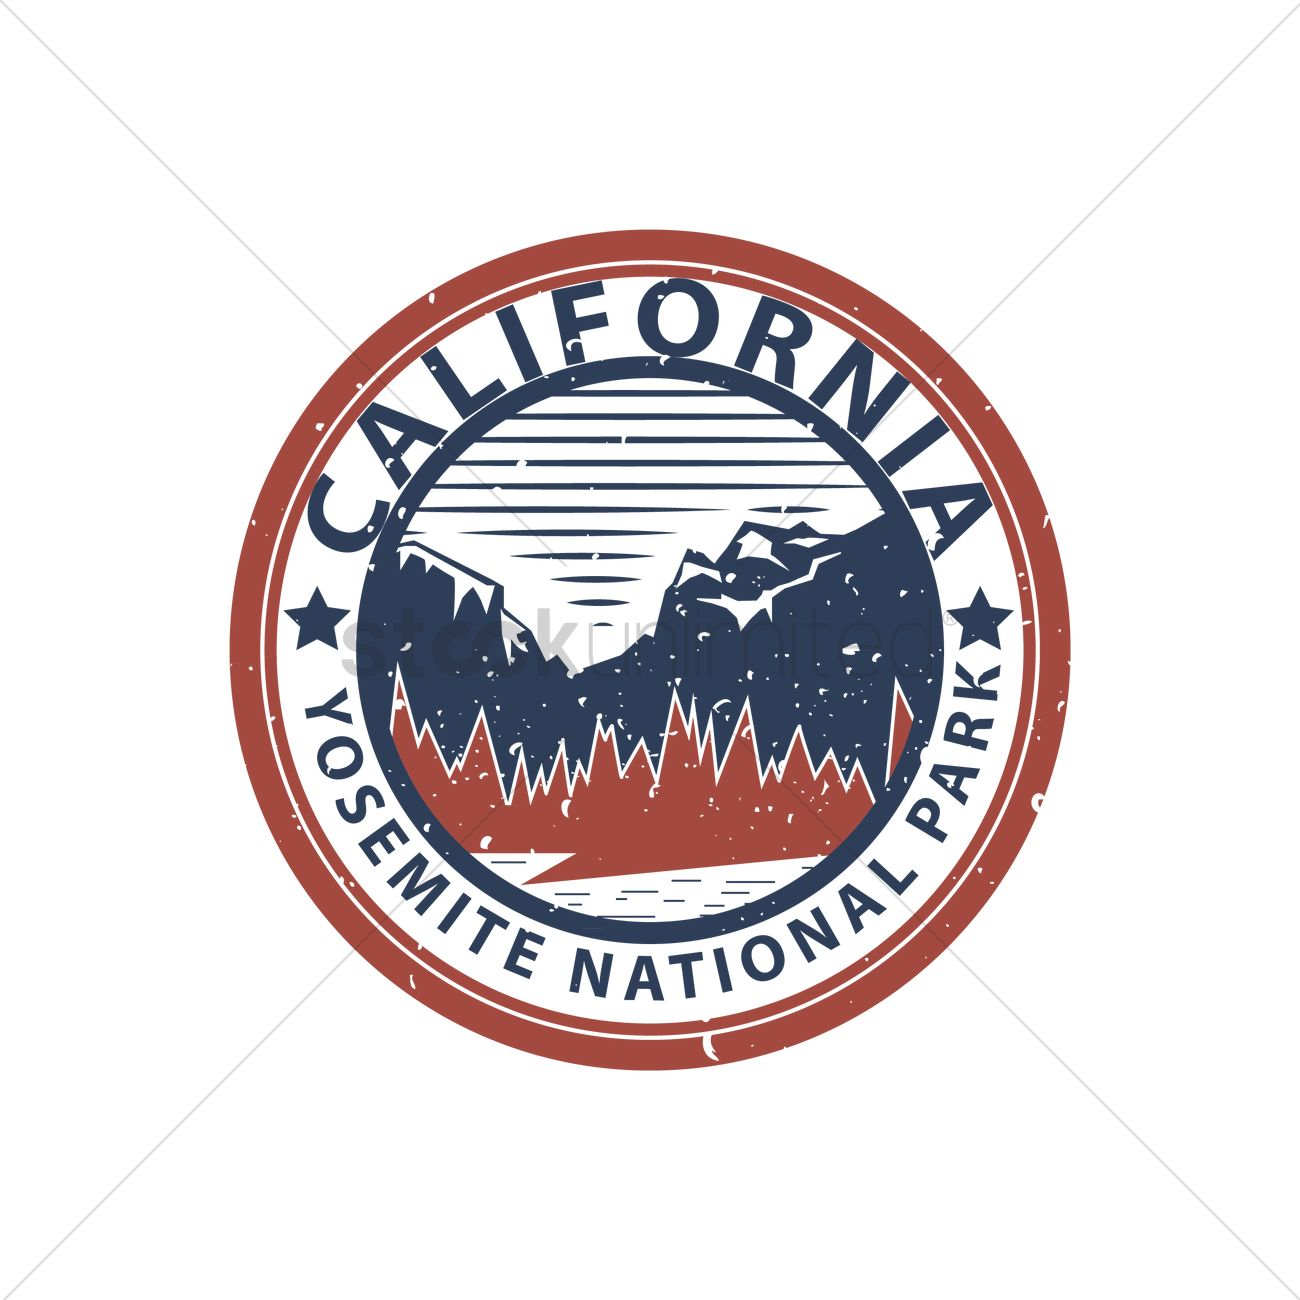 Yosemite National Park Vector Image 1567626 Stockunlimited